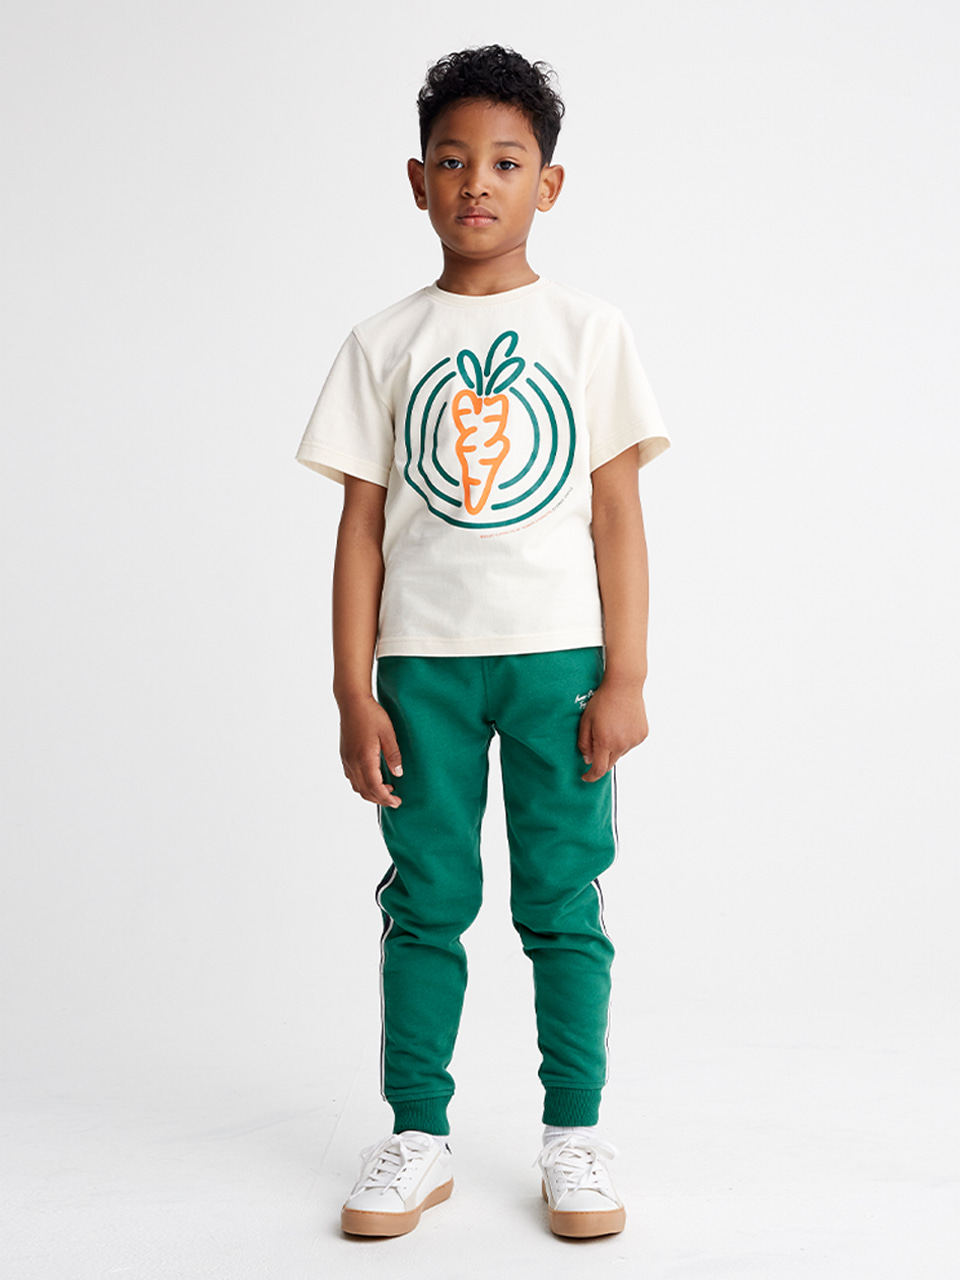 [SS20 SV X Carrots] Circle Carrots T-Shirts for Kids(Ivory) 스테레오 바이널즈[SS20 SV X Carrots] Circle Carrots T-Shirts for Kids(Ivory)